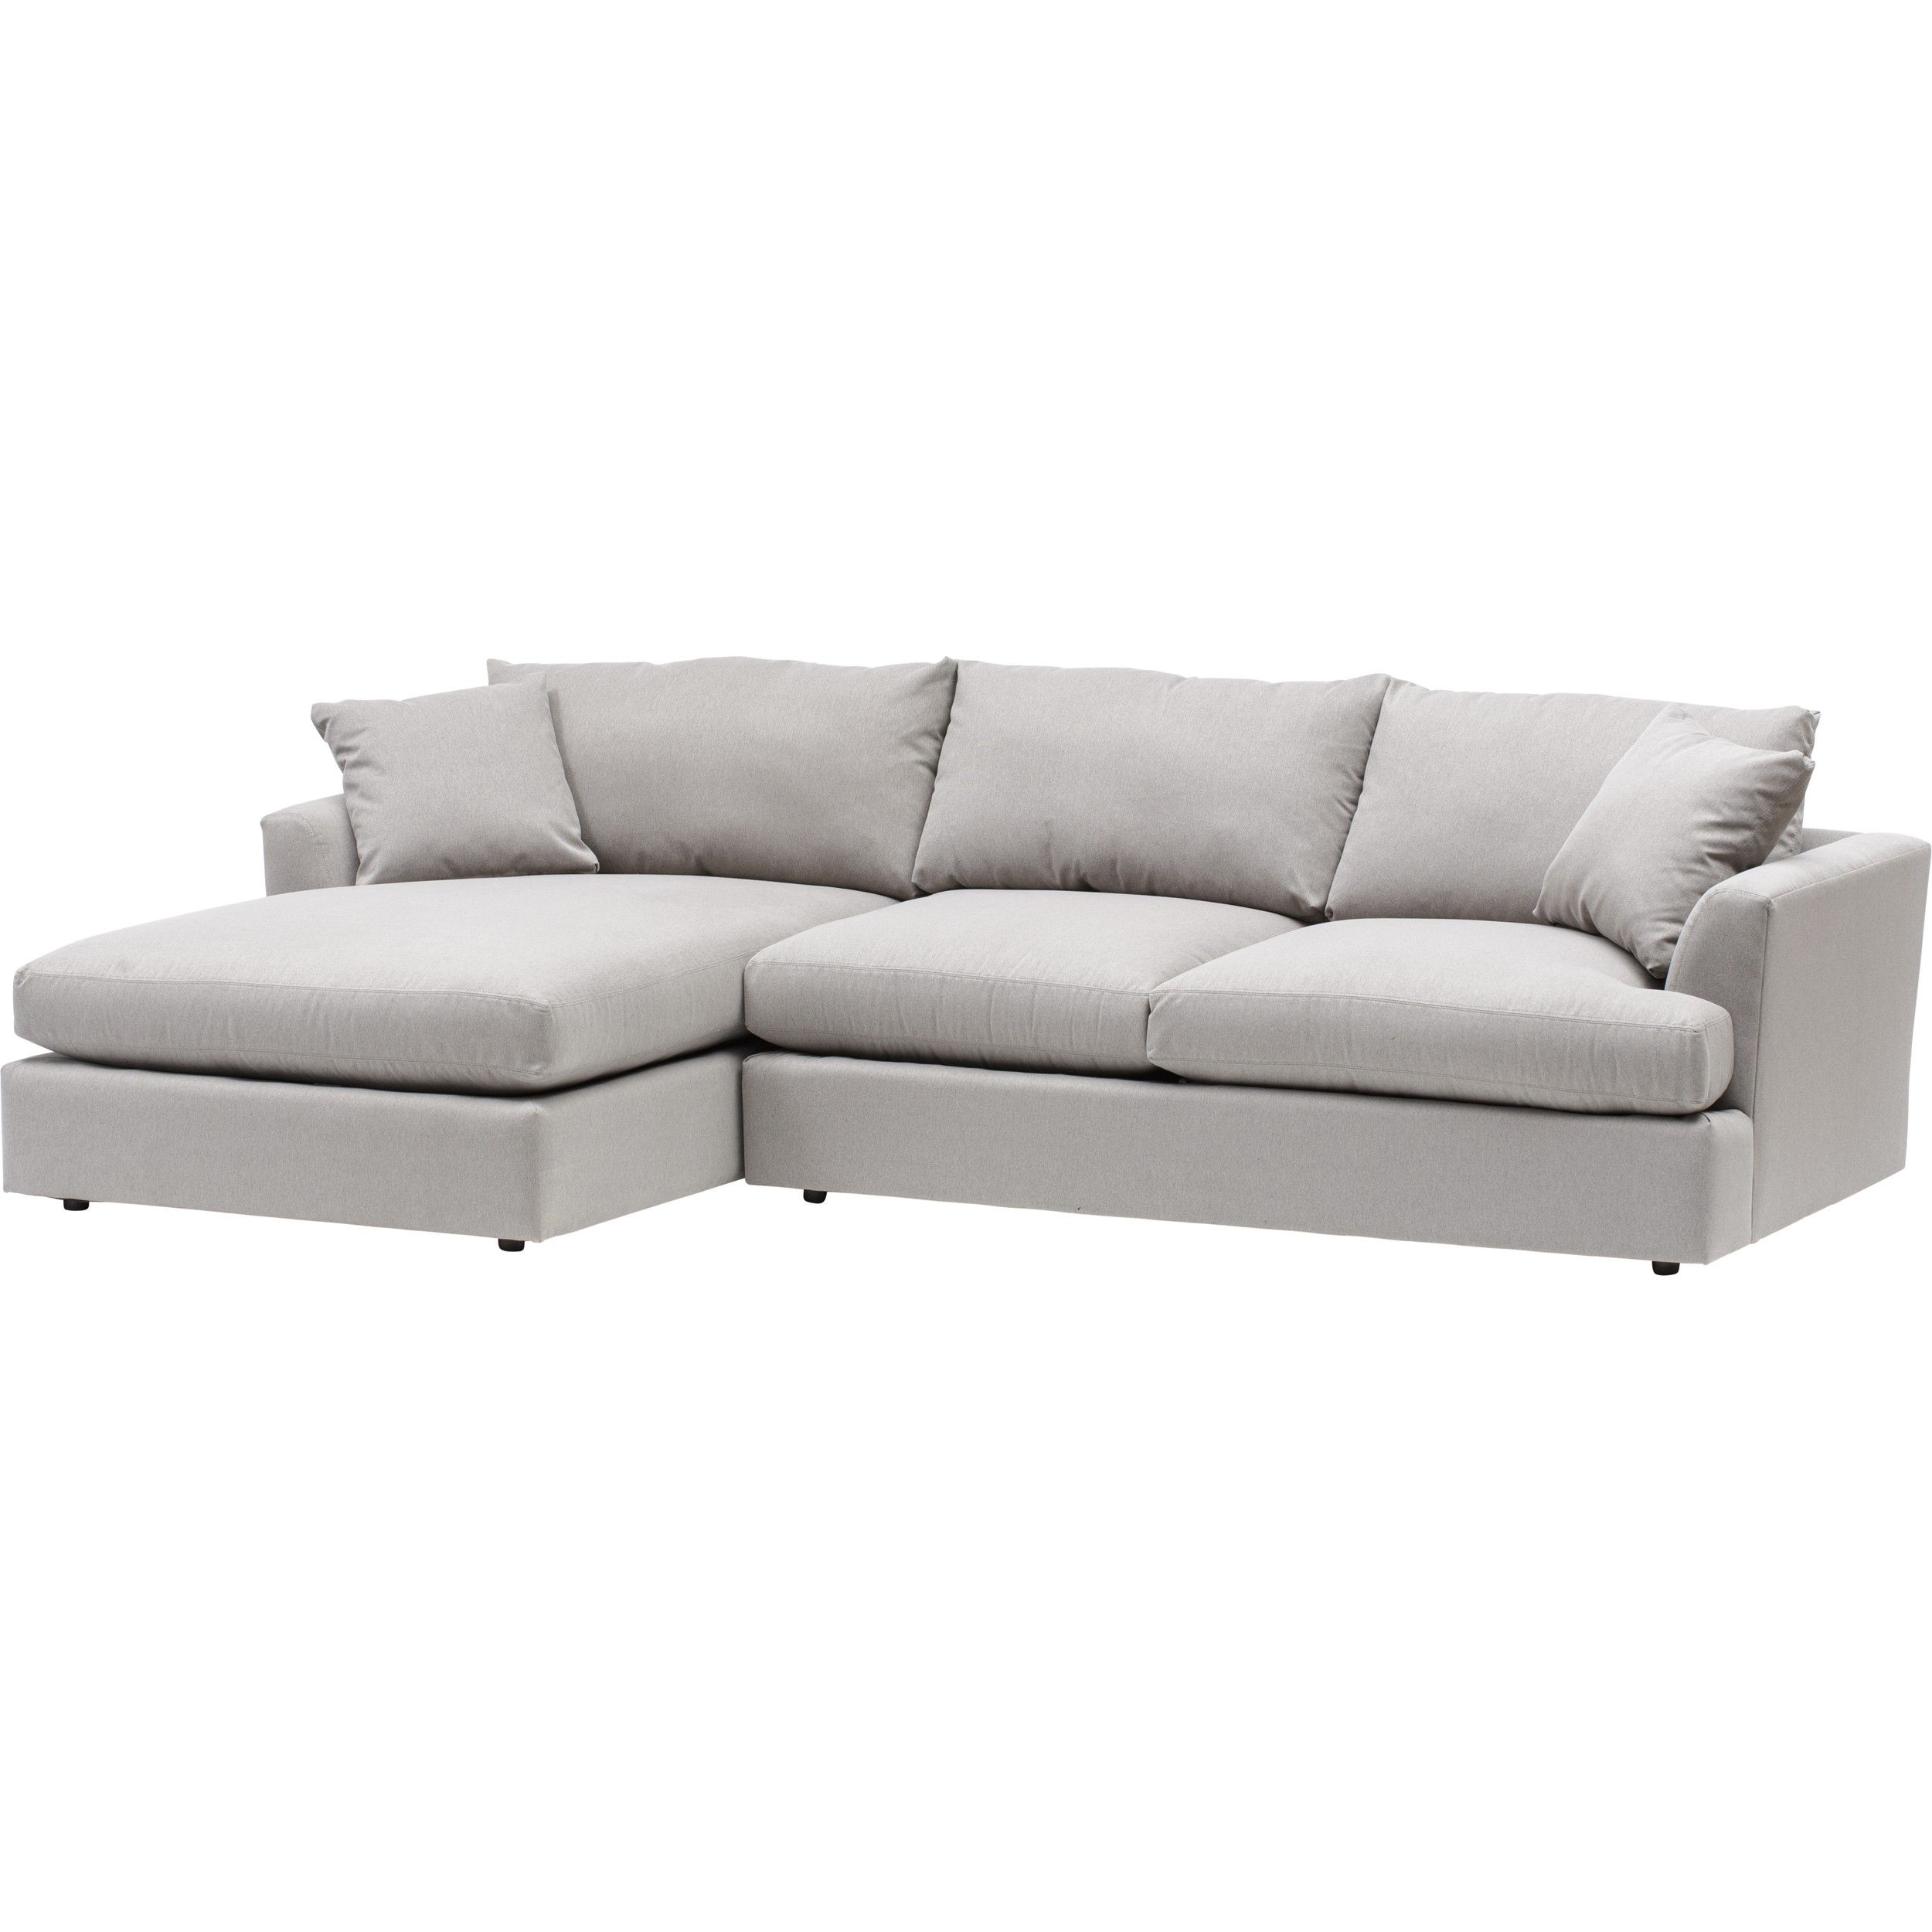 Bon High Fashion Home Andre Sectional, Dawson Cement $2,099.00 I Think This  Would Be Great For Upstairs Playroom.